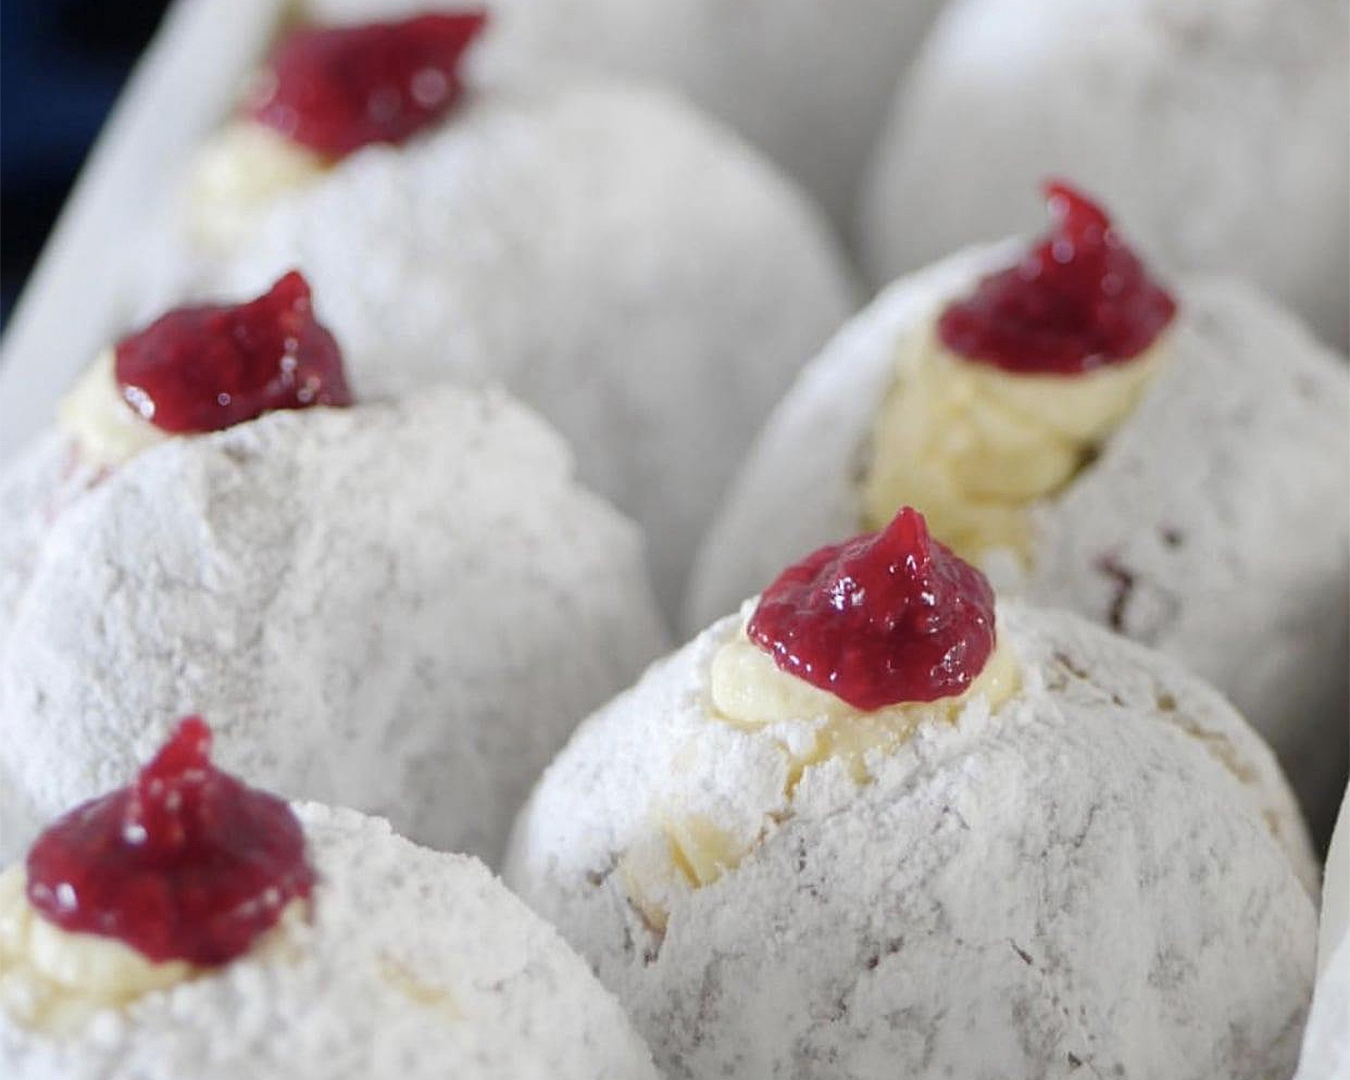 Diplomat donuts bursting with cream and raspberry coulis